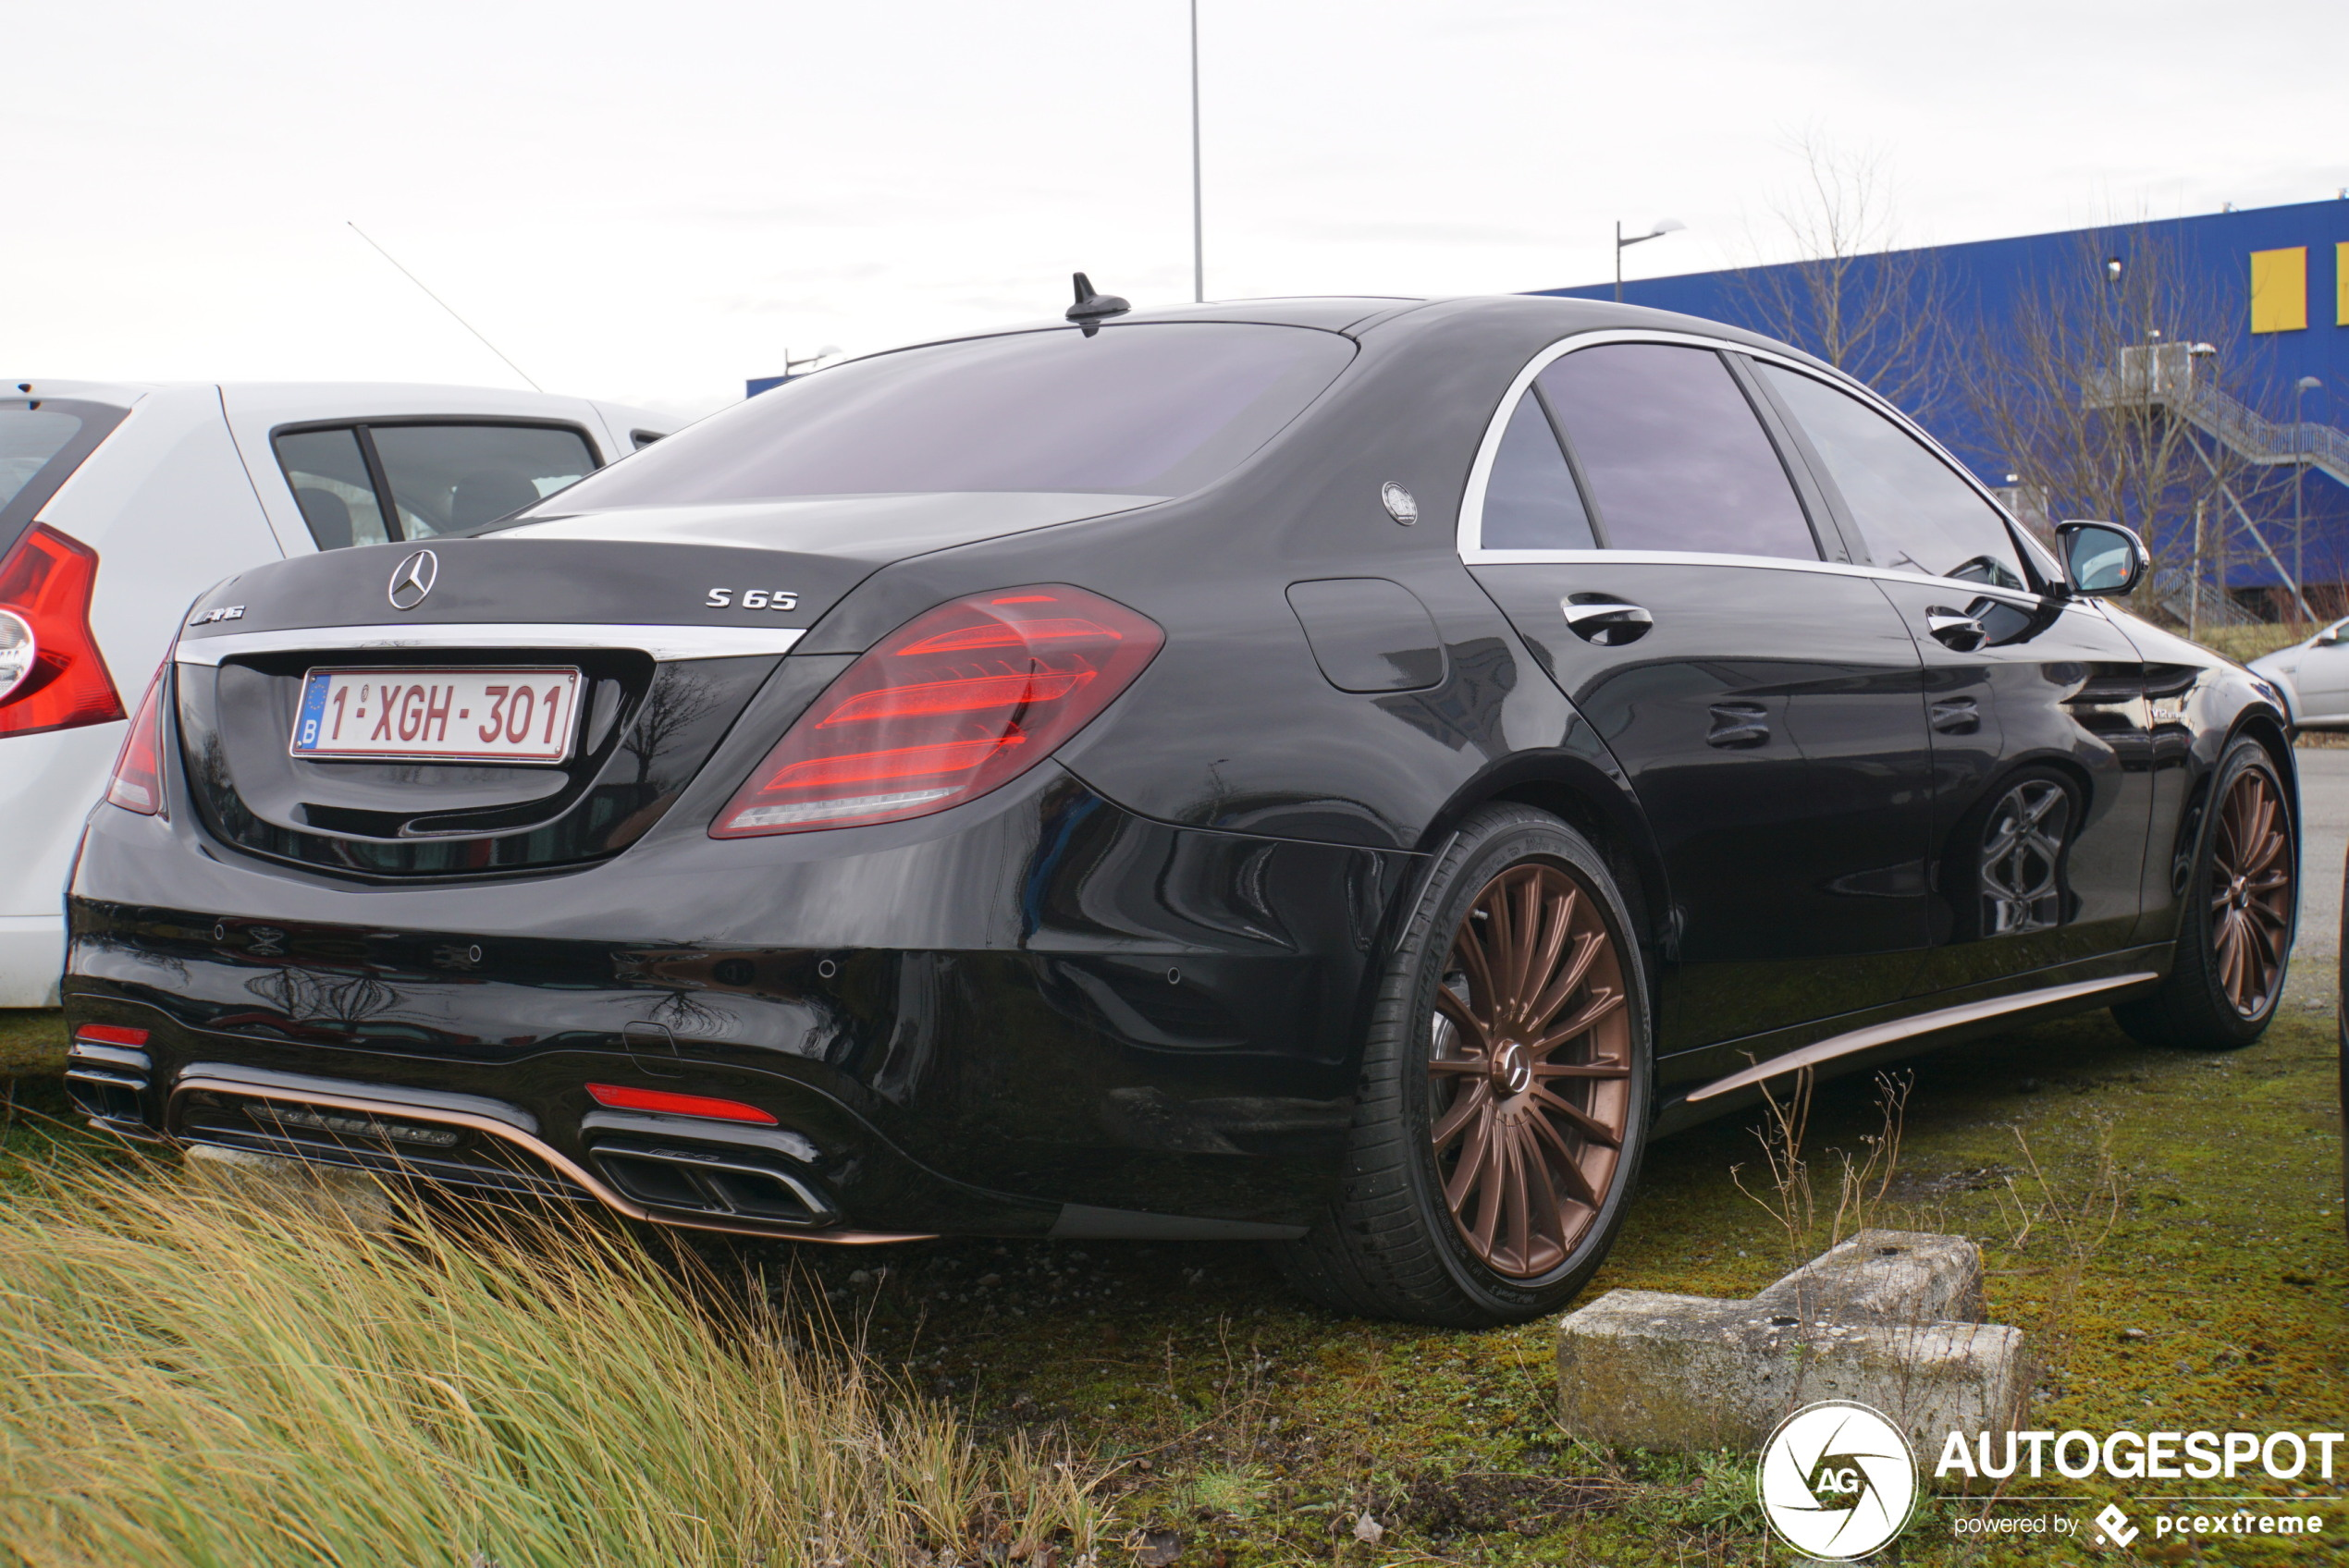 Geniet van deze Mercedes-AMG S 65 Final Edition